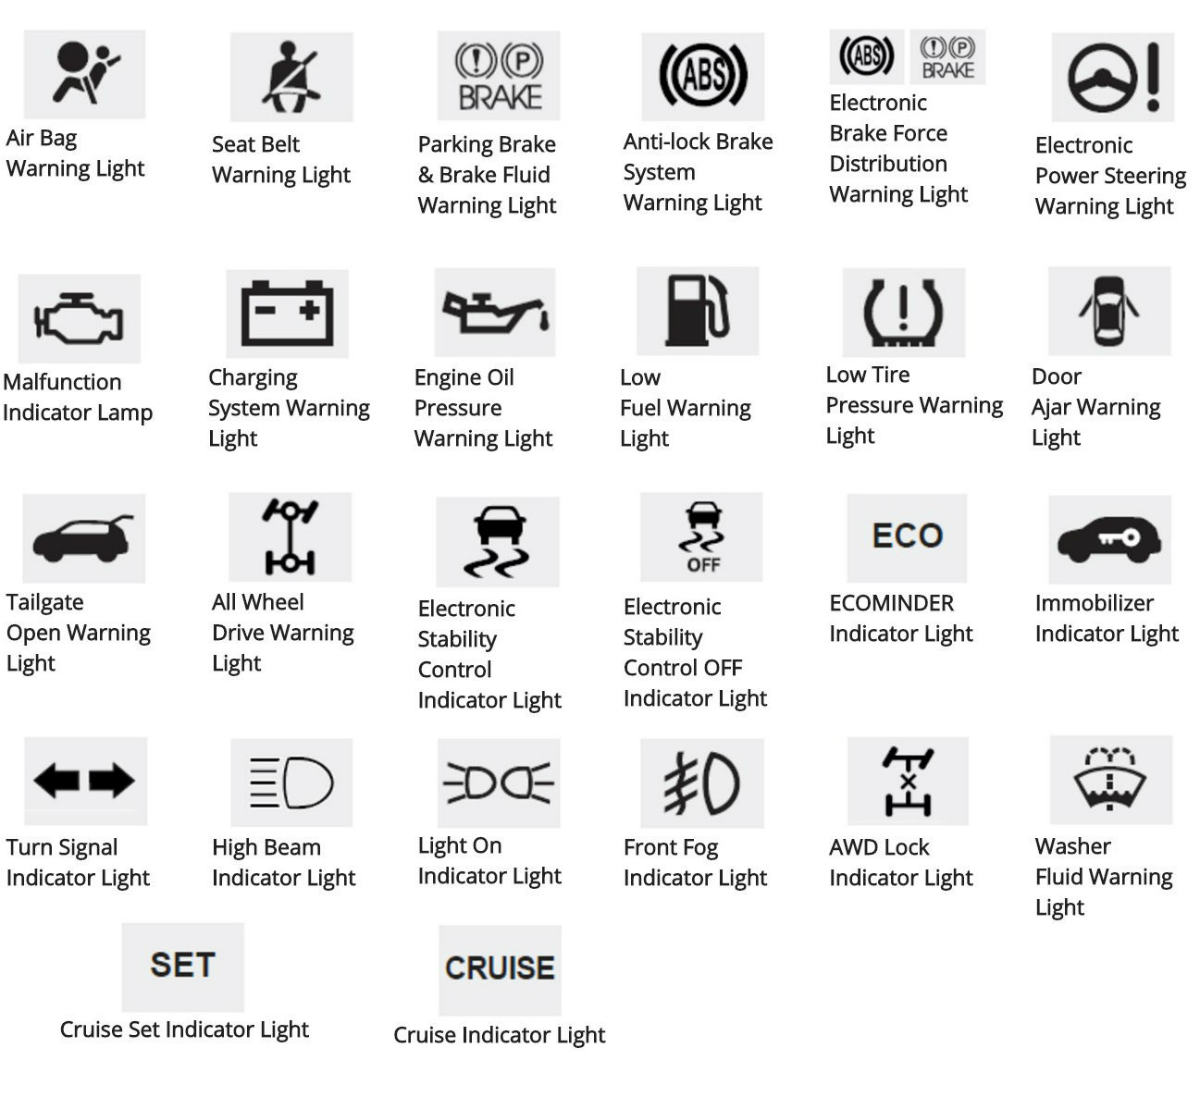 jeep grand cherokee warning lights manual